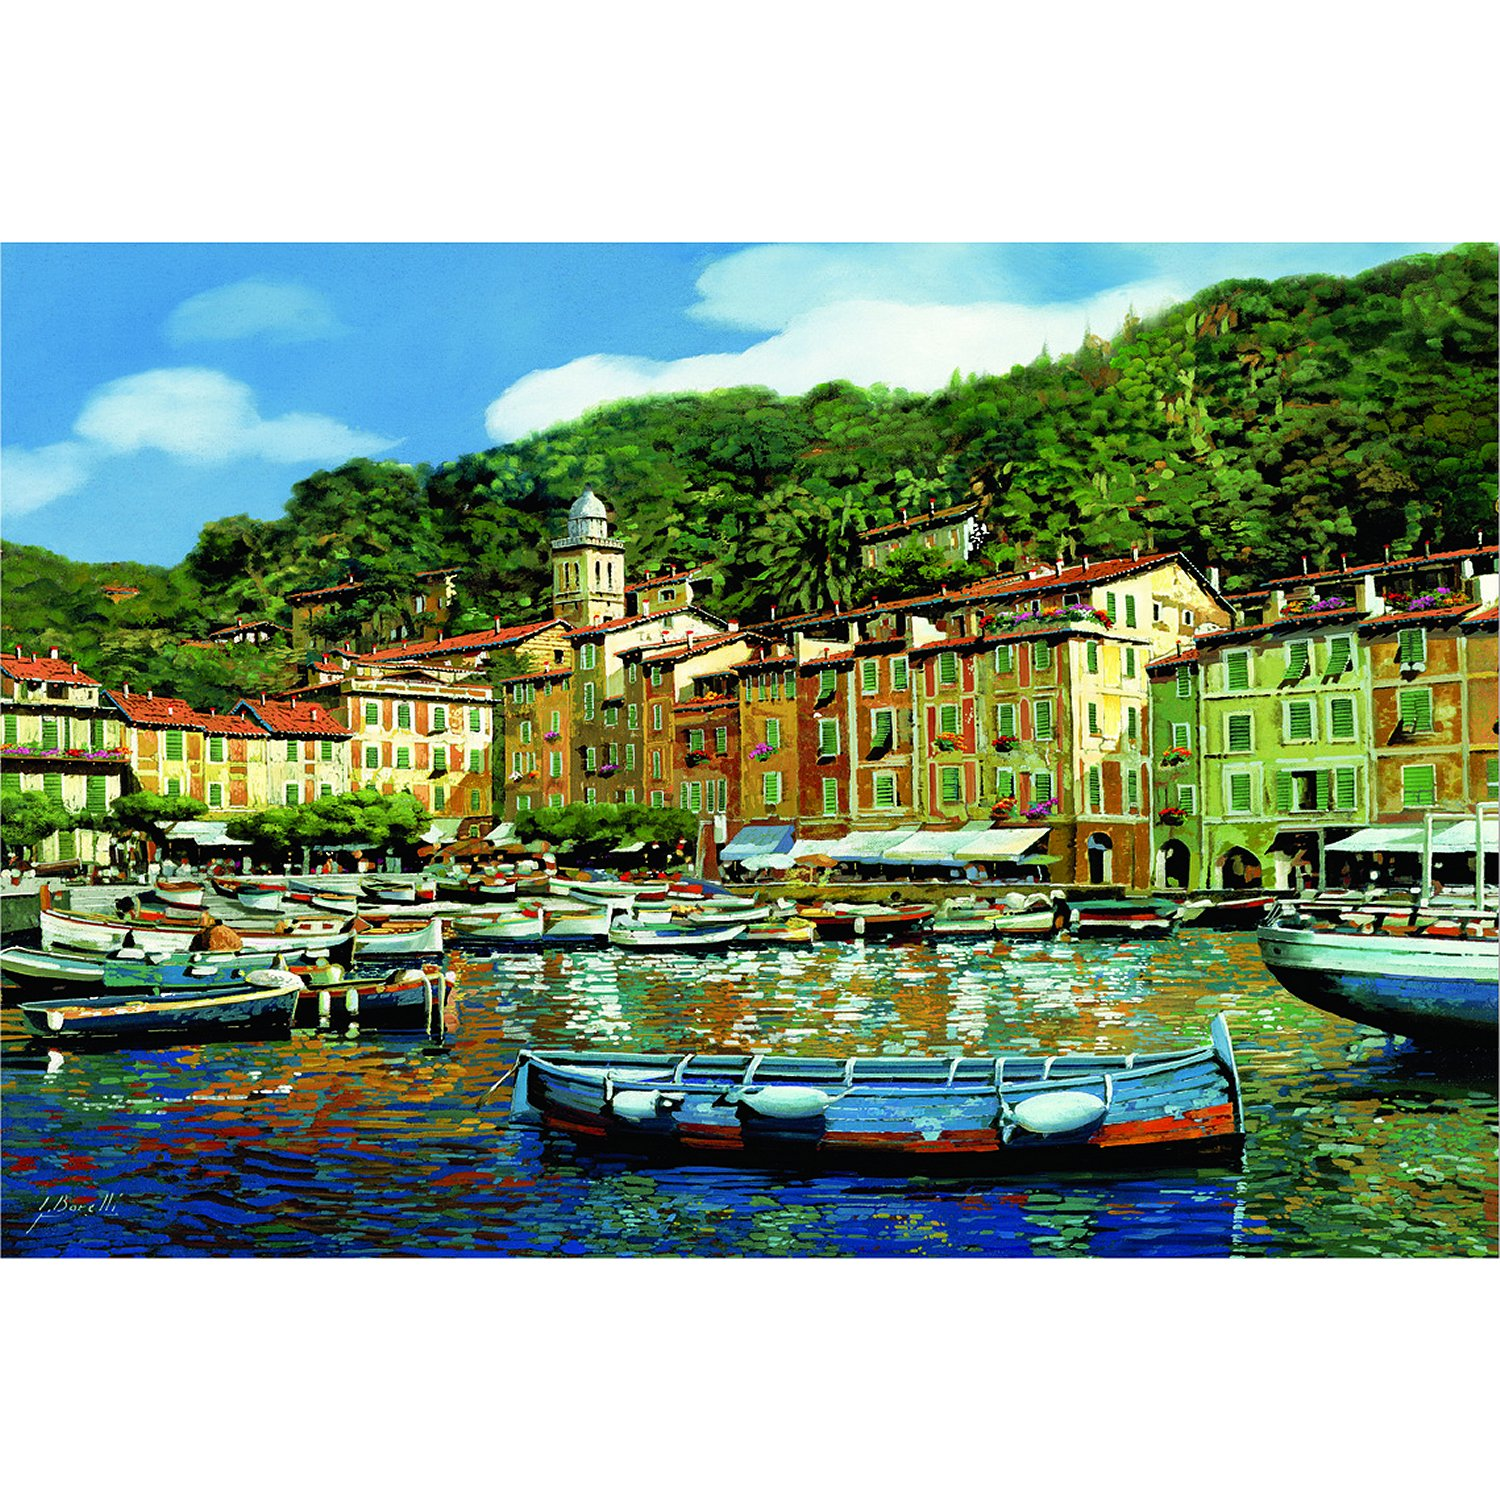 portofino italie puzzle 4000 pi ces format paysage educa puzzle acheter en ligne. Black Bedroom Furniture Sets. Home Design Ideas